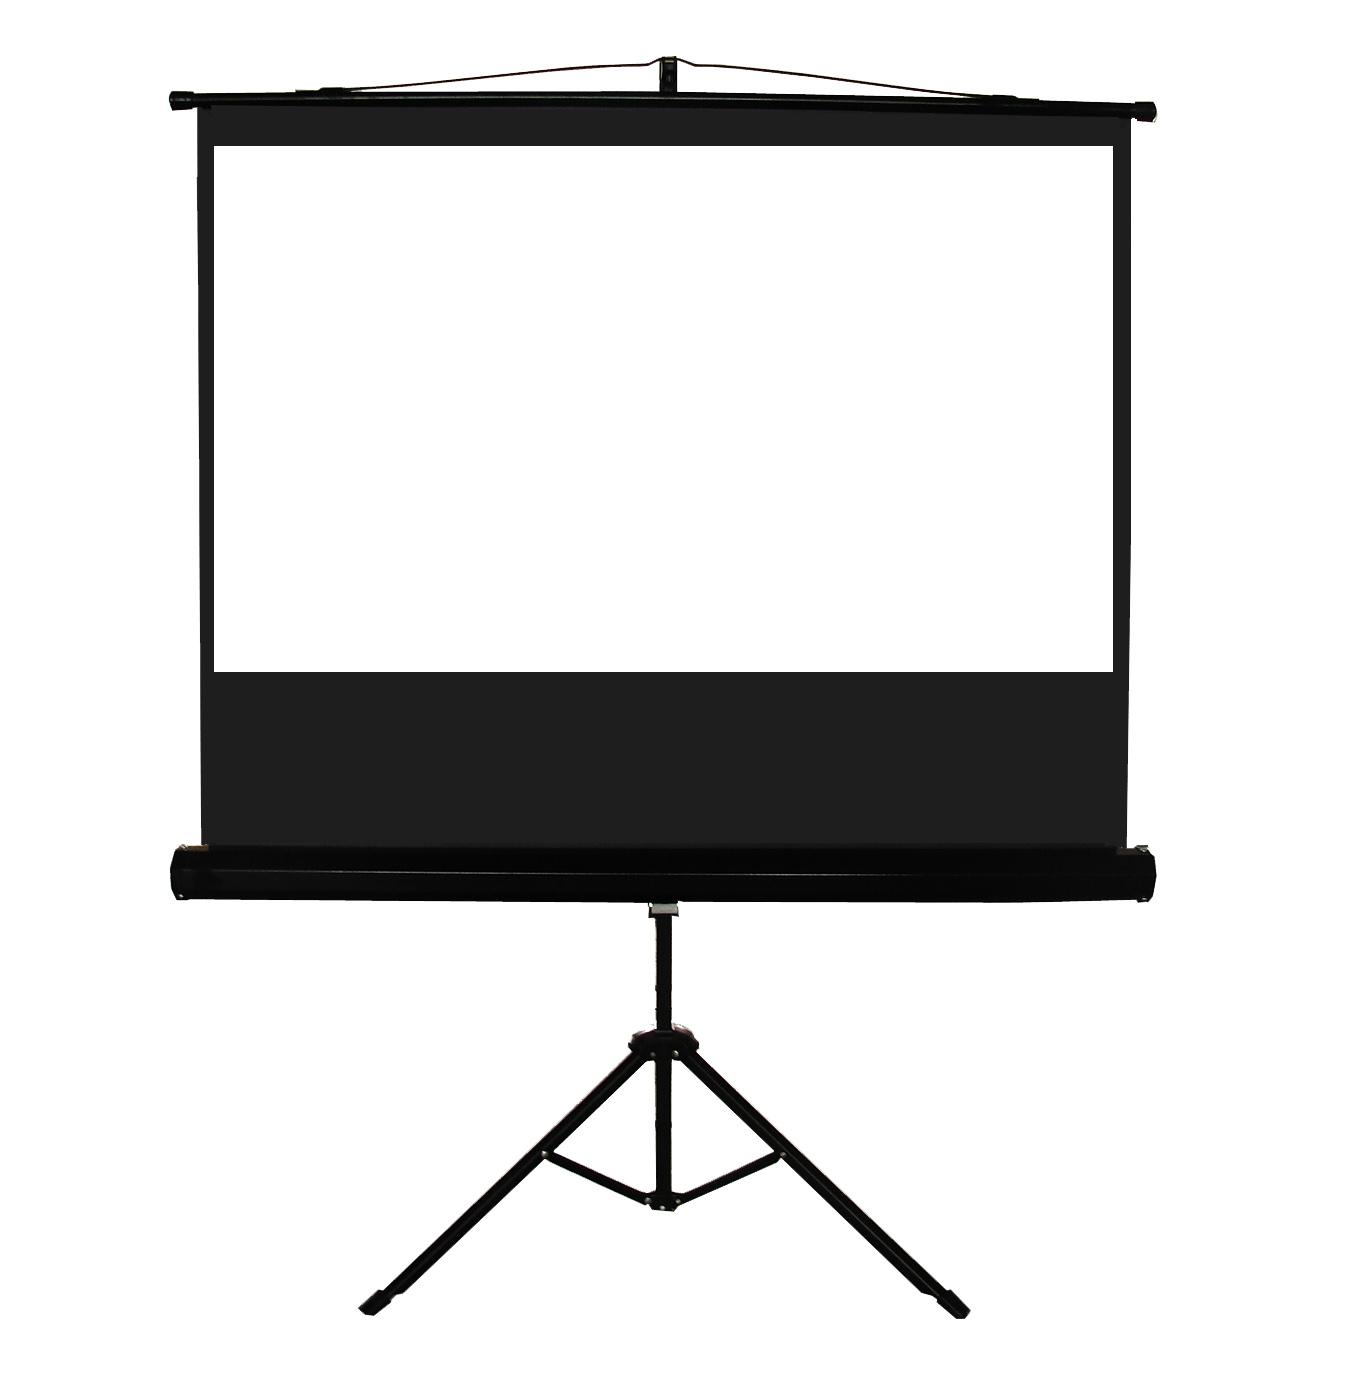 100 4 3 tripod portable projection screen me43t 100 me43t for Portable window curtain